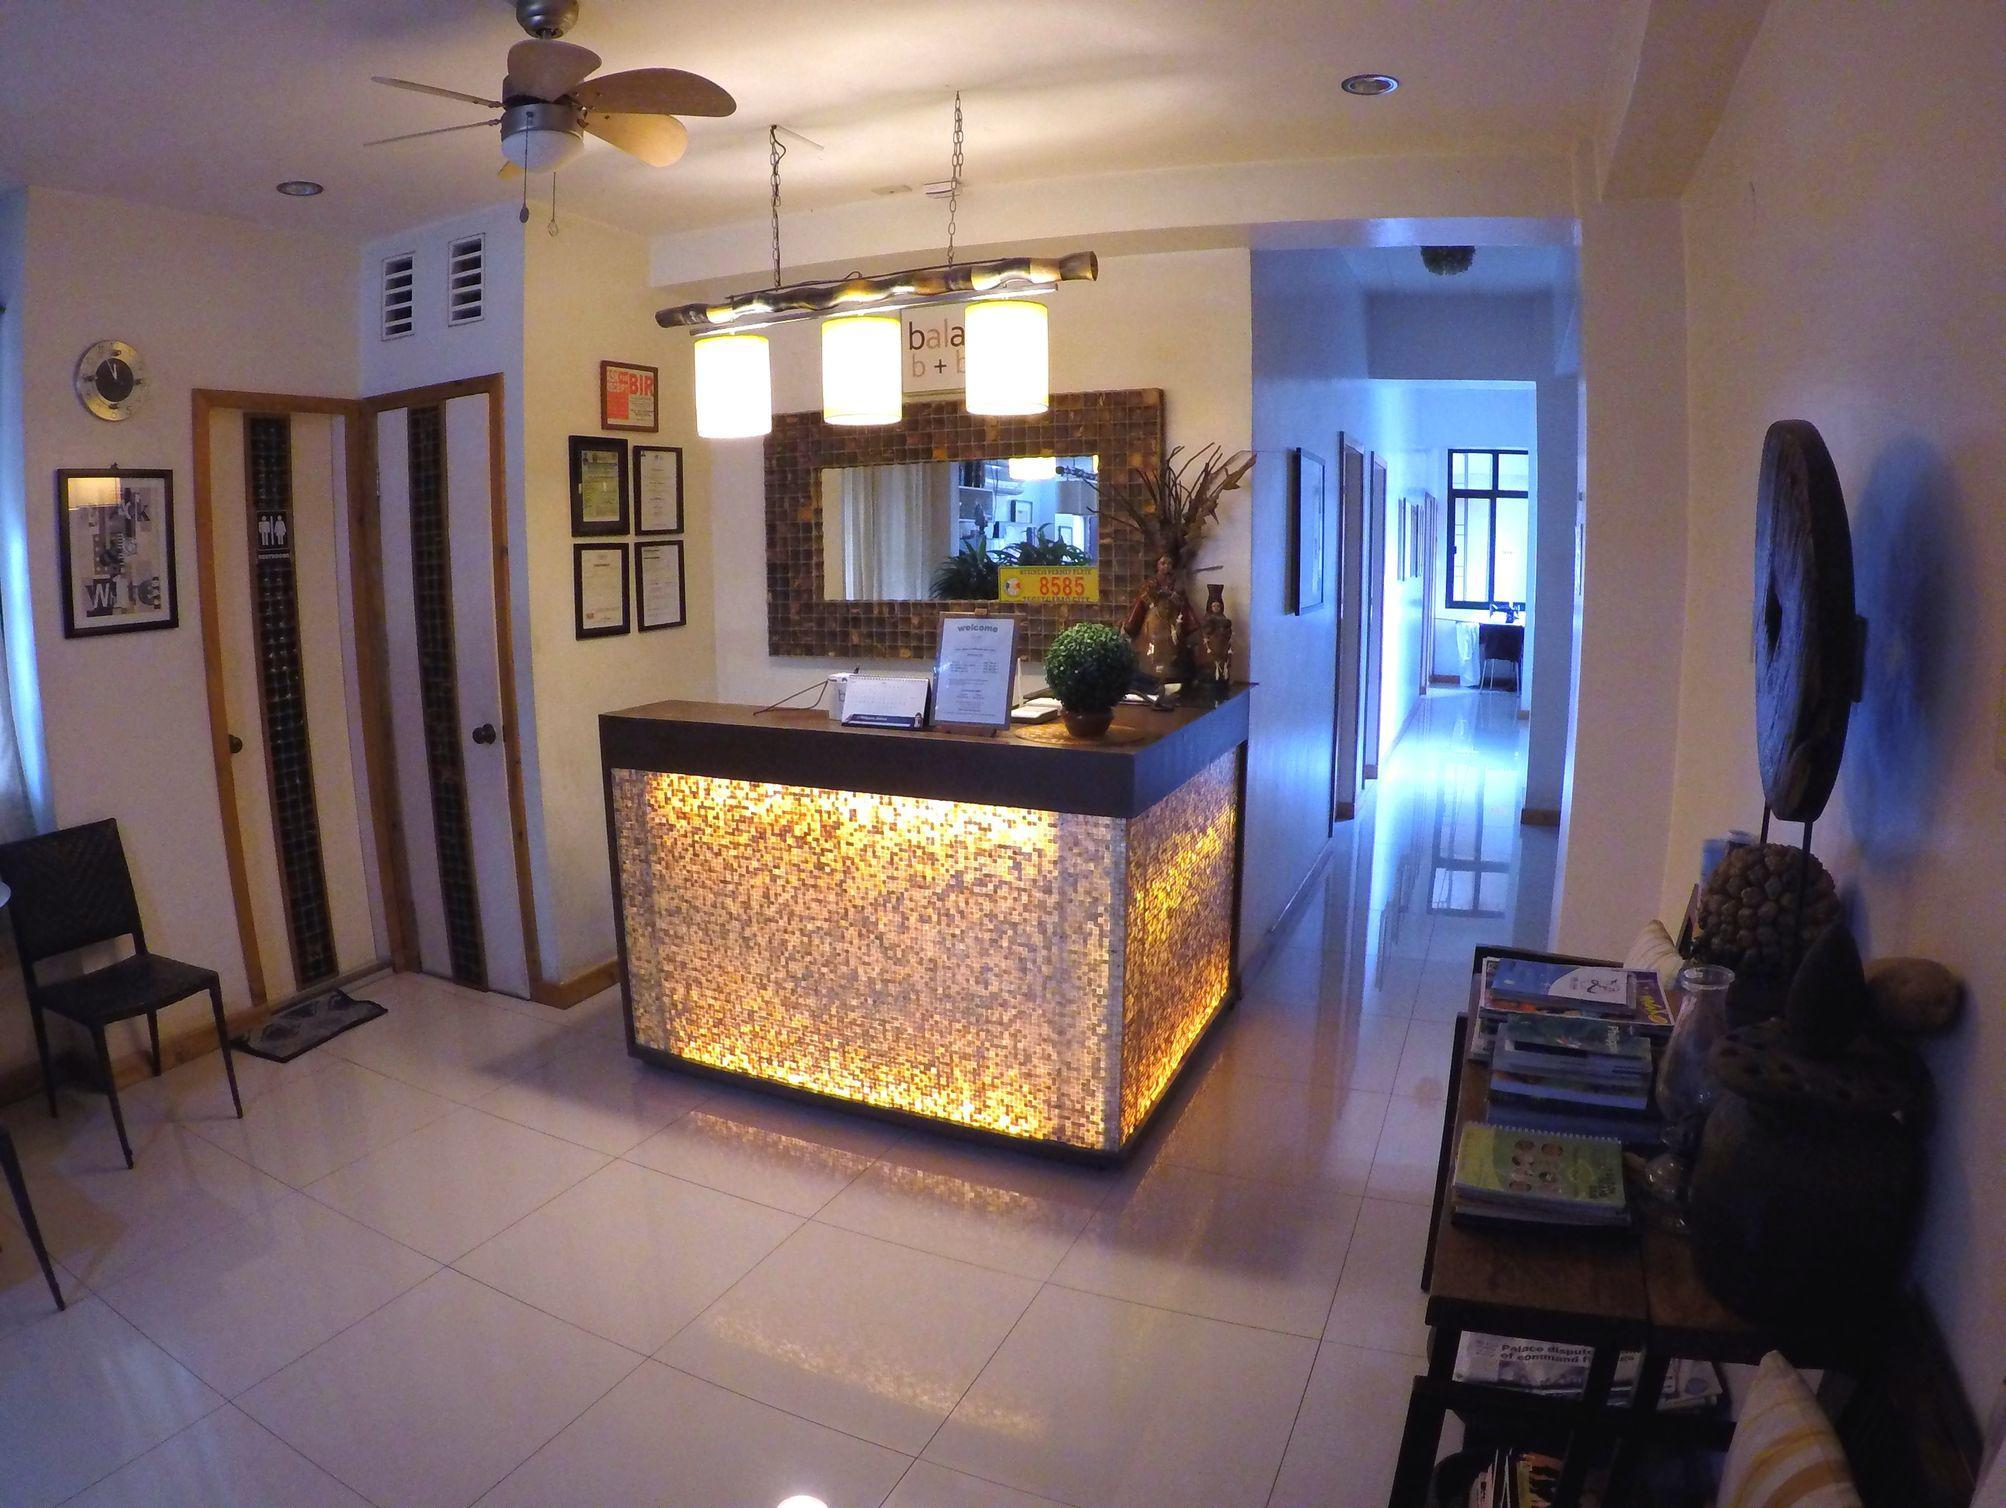 Balai Bed And Breakfast Tuguegarao Contact Number